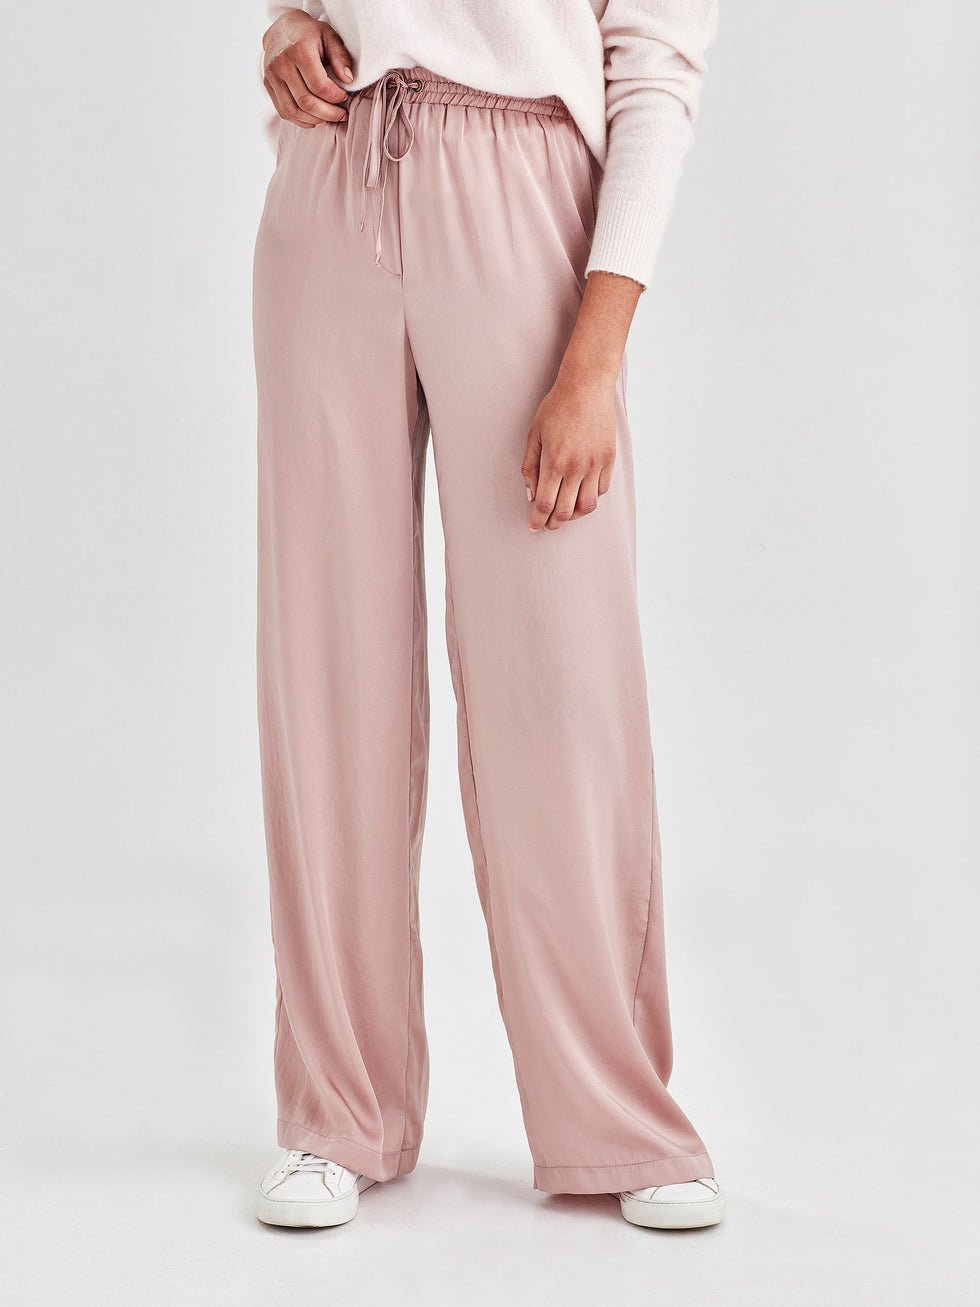 Polly Pant (Satin Triacetate) Blush